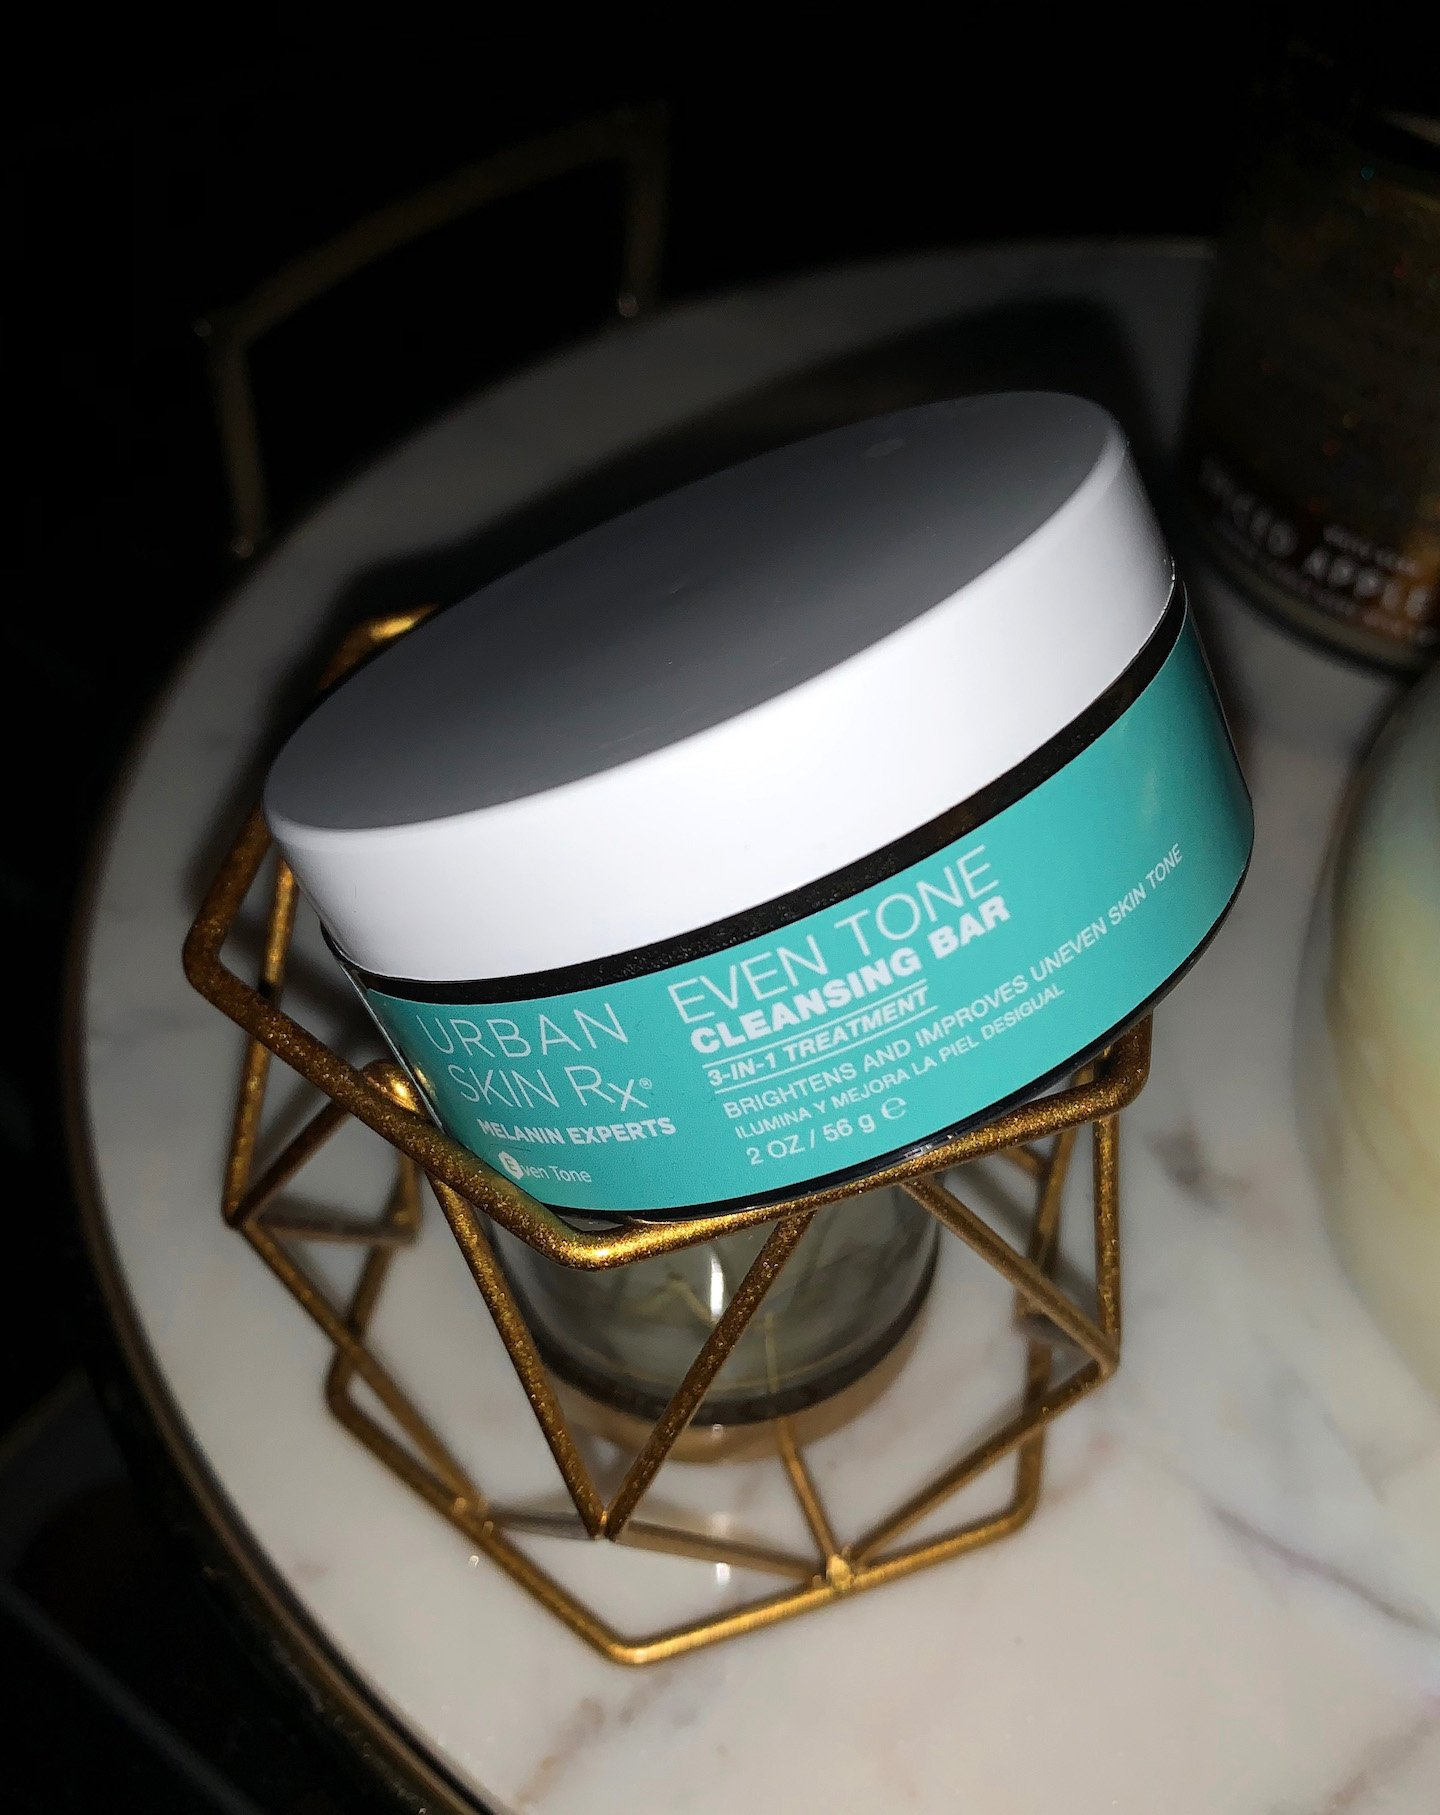 Urban Skin Rx Even Tone Cleansing Bar Review